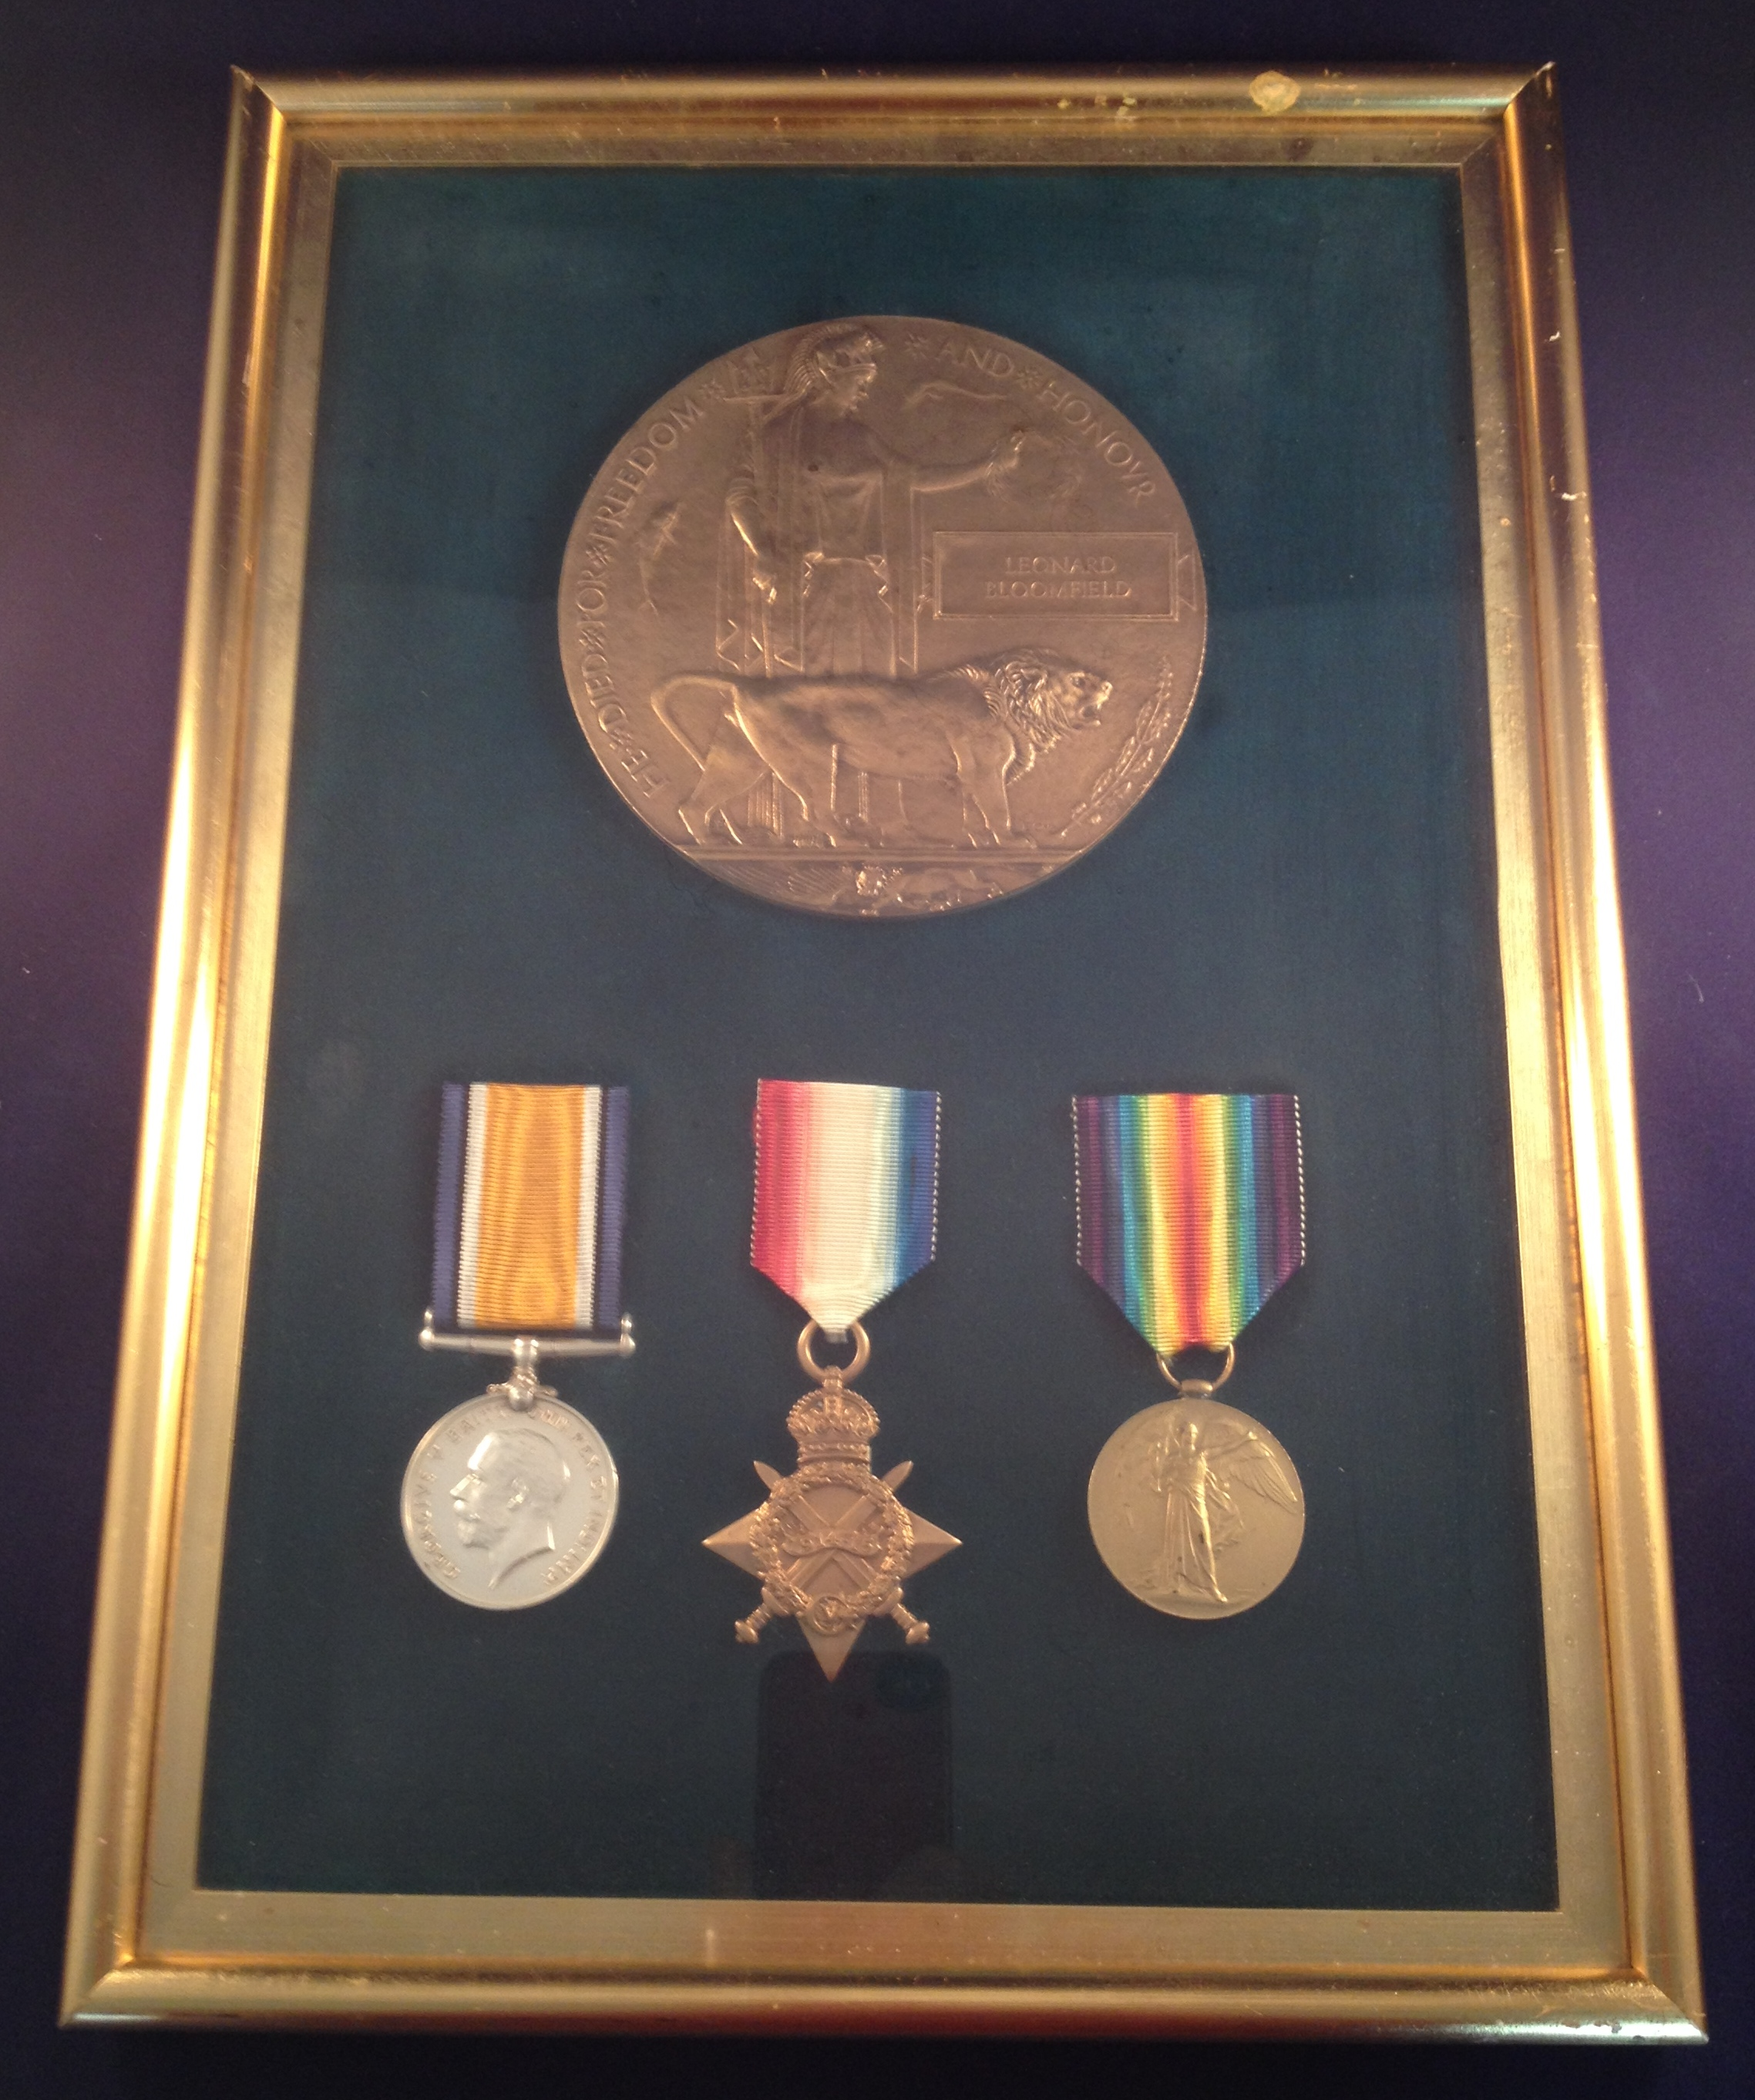 Private Bloomfield's Medals and Memorial Plaque